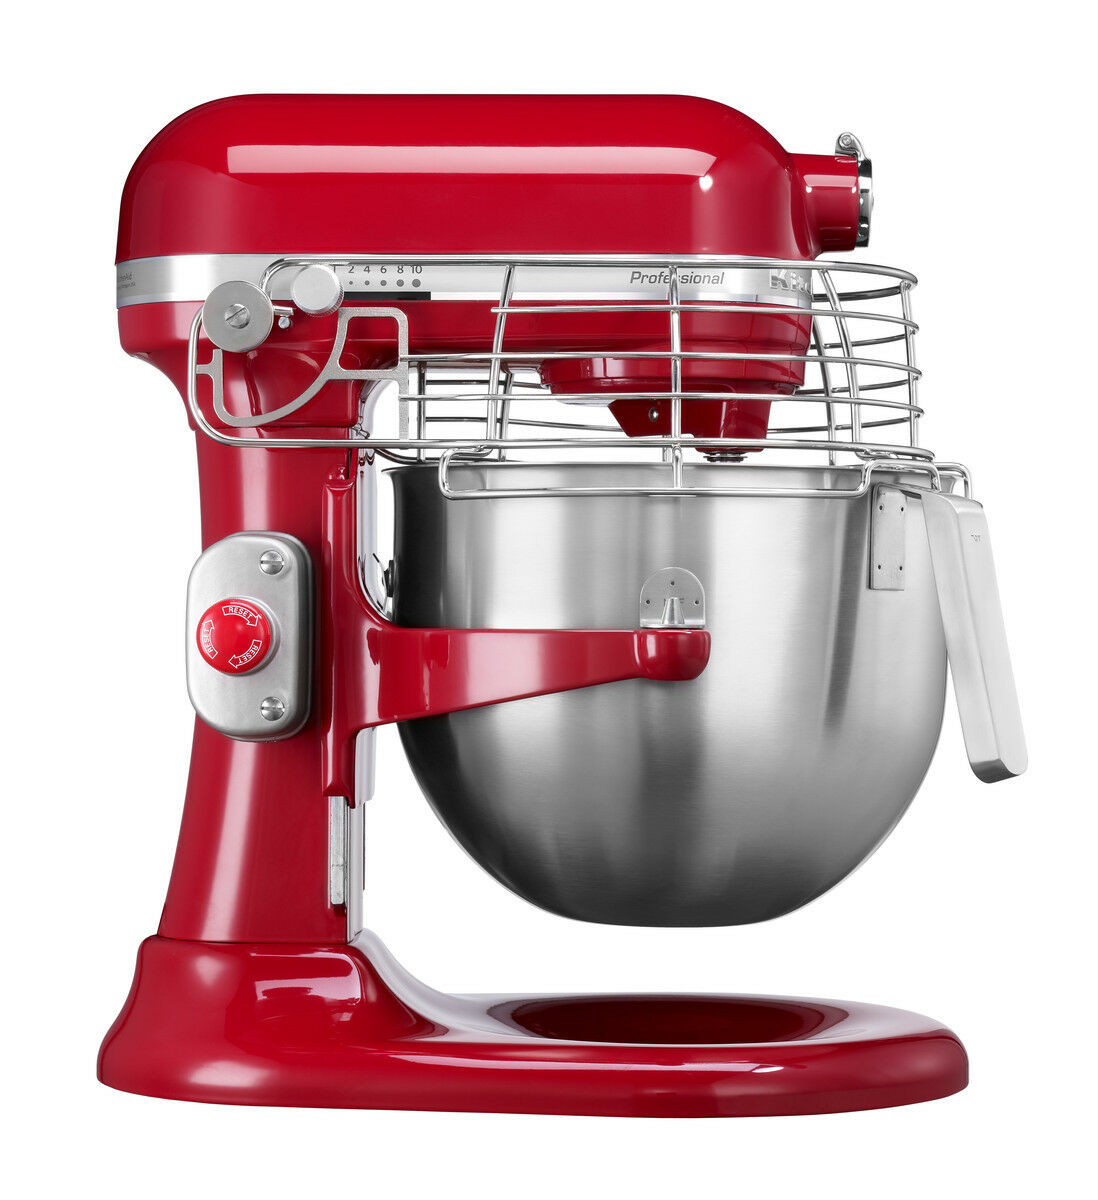 kitchenaid professional 1 3 hp 5ksm7990xeer empire rot mit 6 9 l sch ssel eur 949 00 picclick de. Black Bedroom Furniture Sets. Home Design Ideas